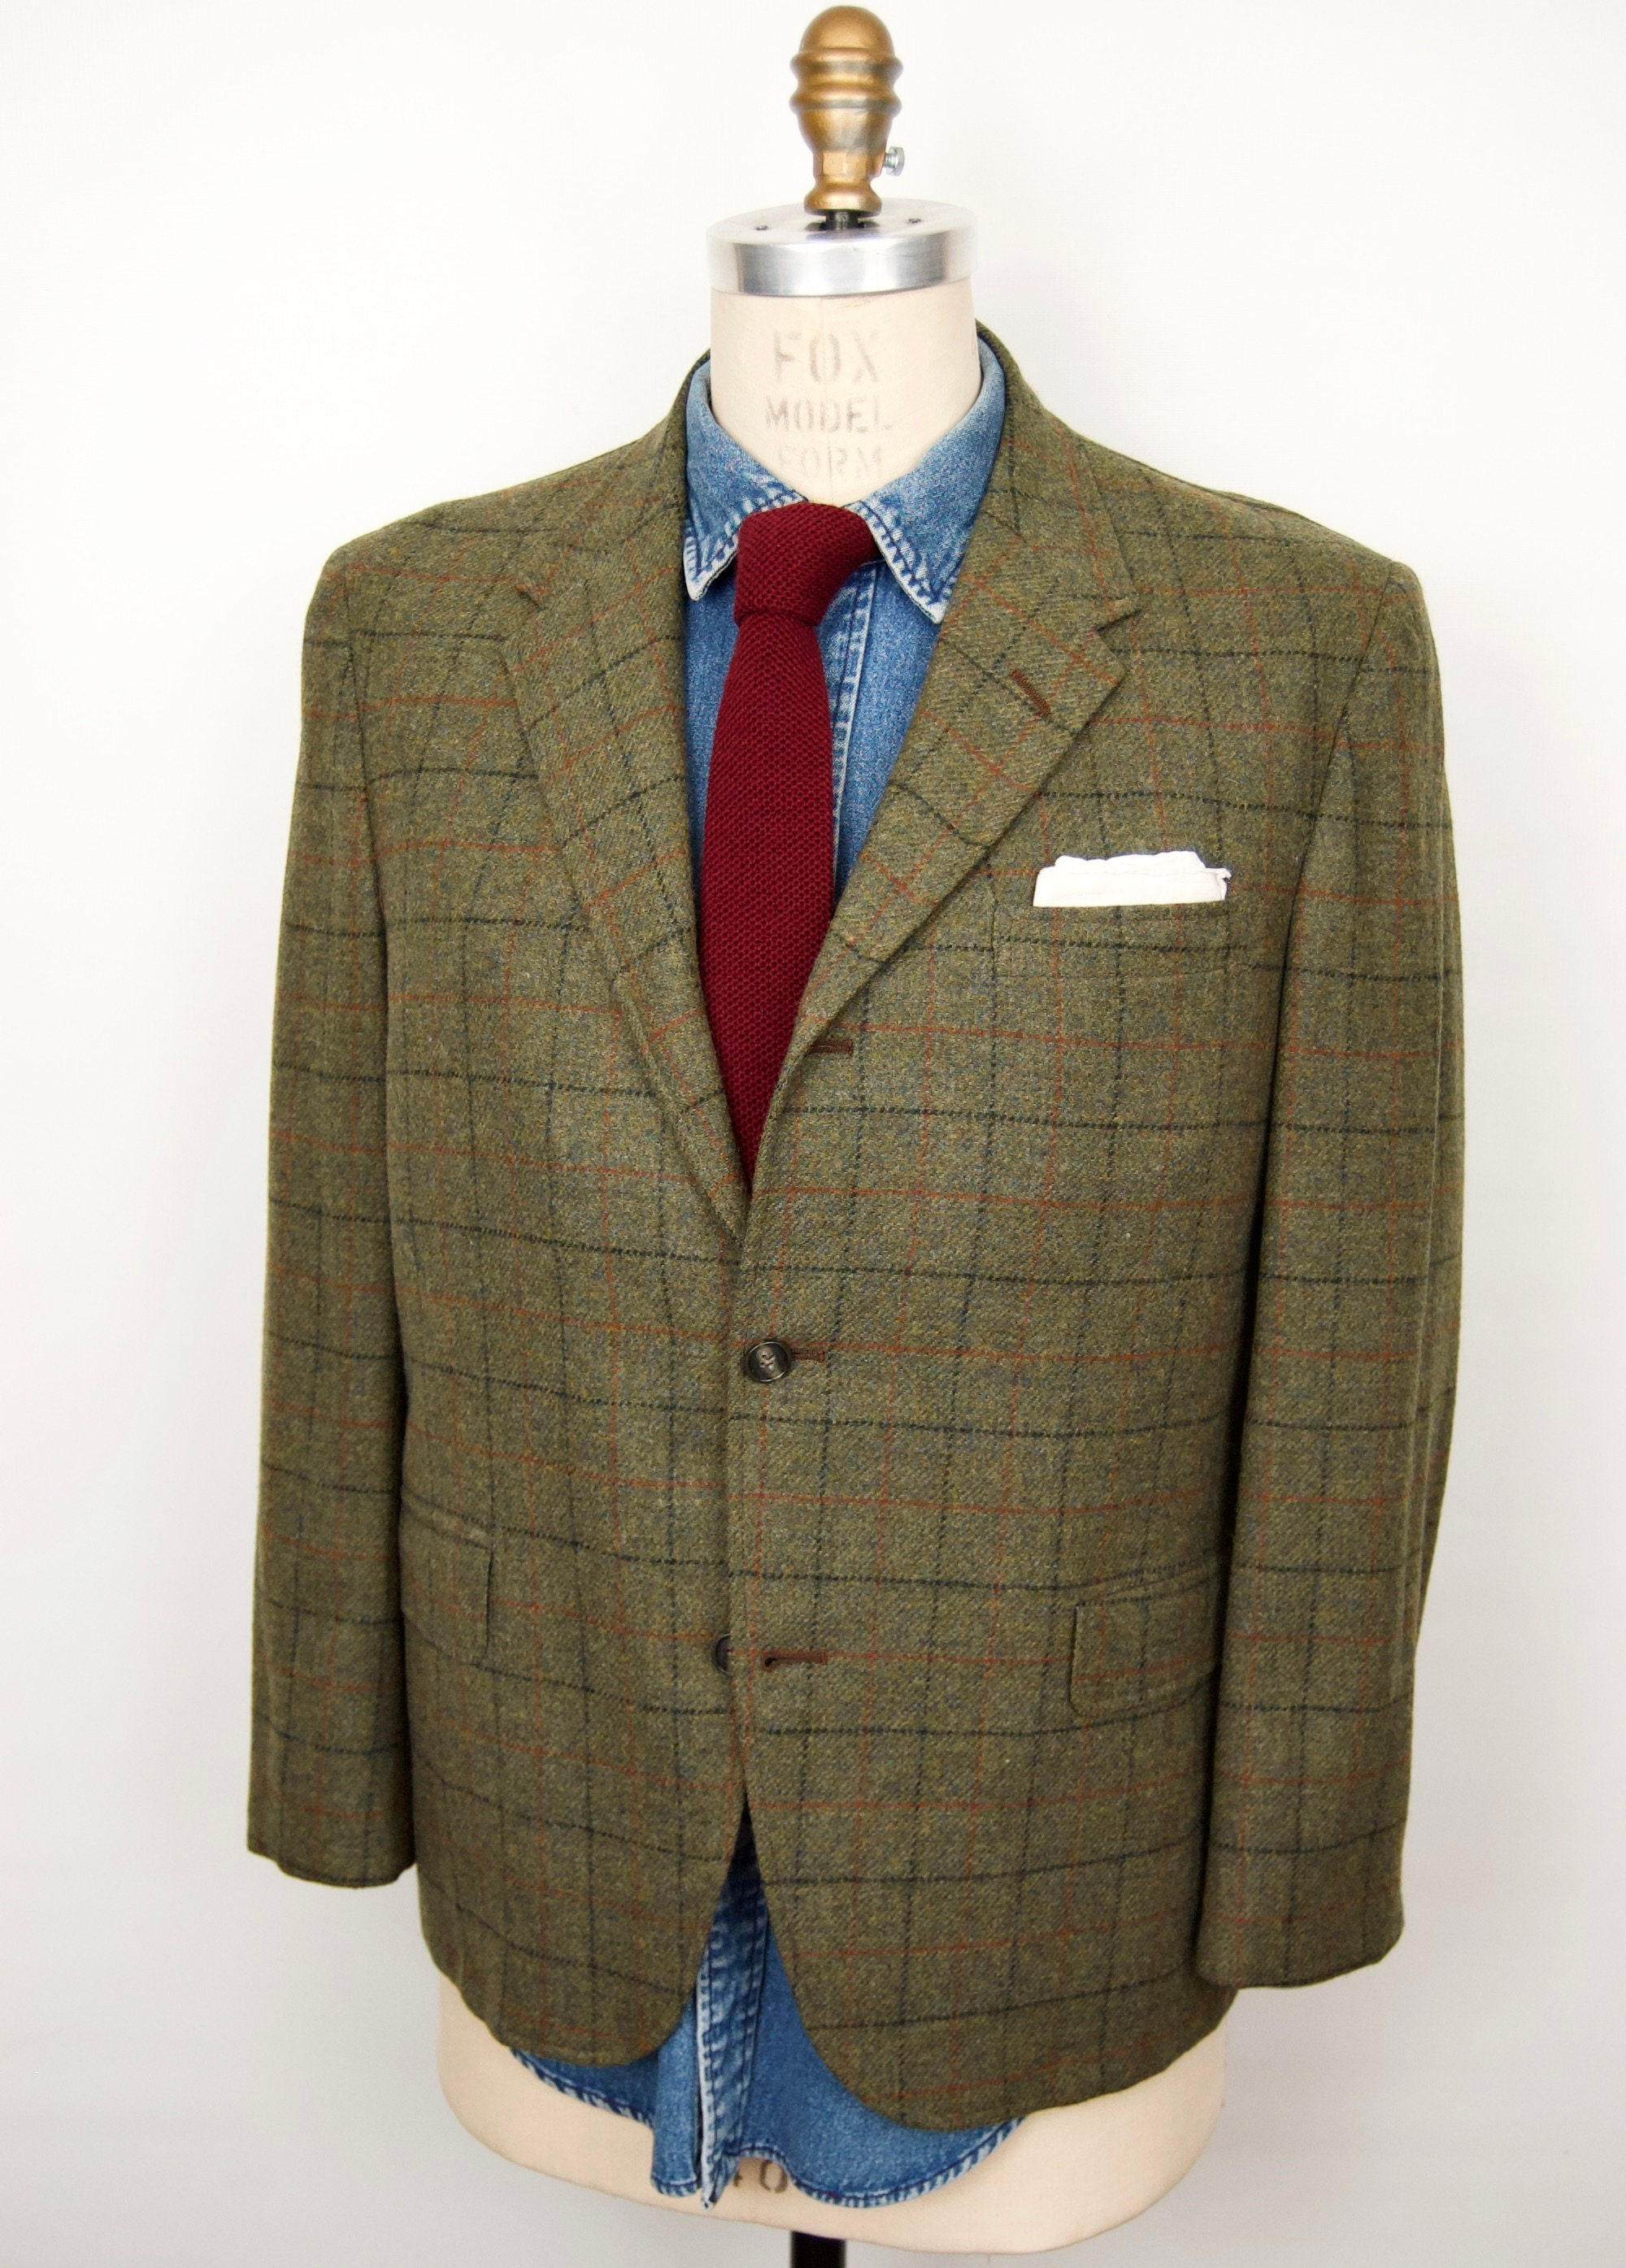 1950s Mens Suits & Sport Coats | 50s Suits & Blazers 1950S-60S Tweed Sport Coat with Windowpane Check PatternSutton Park Green Plaid Wool Suit Jacket Mens 42S $28.00 AT vintagedancer.com